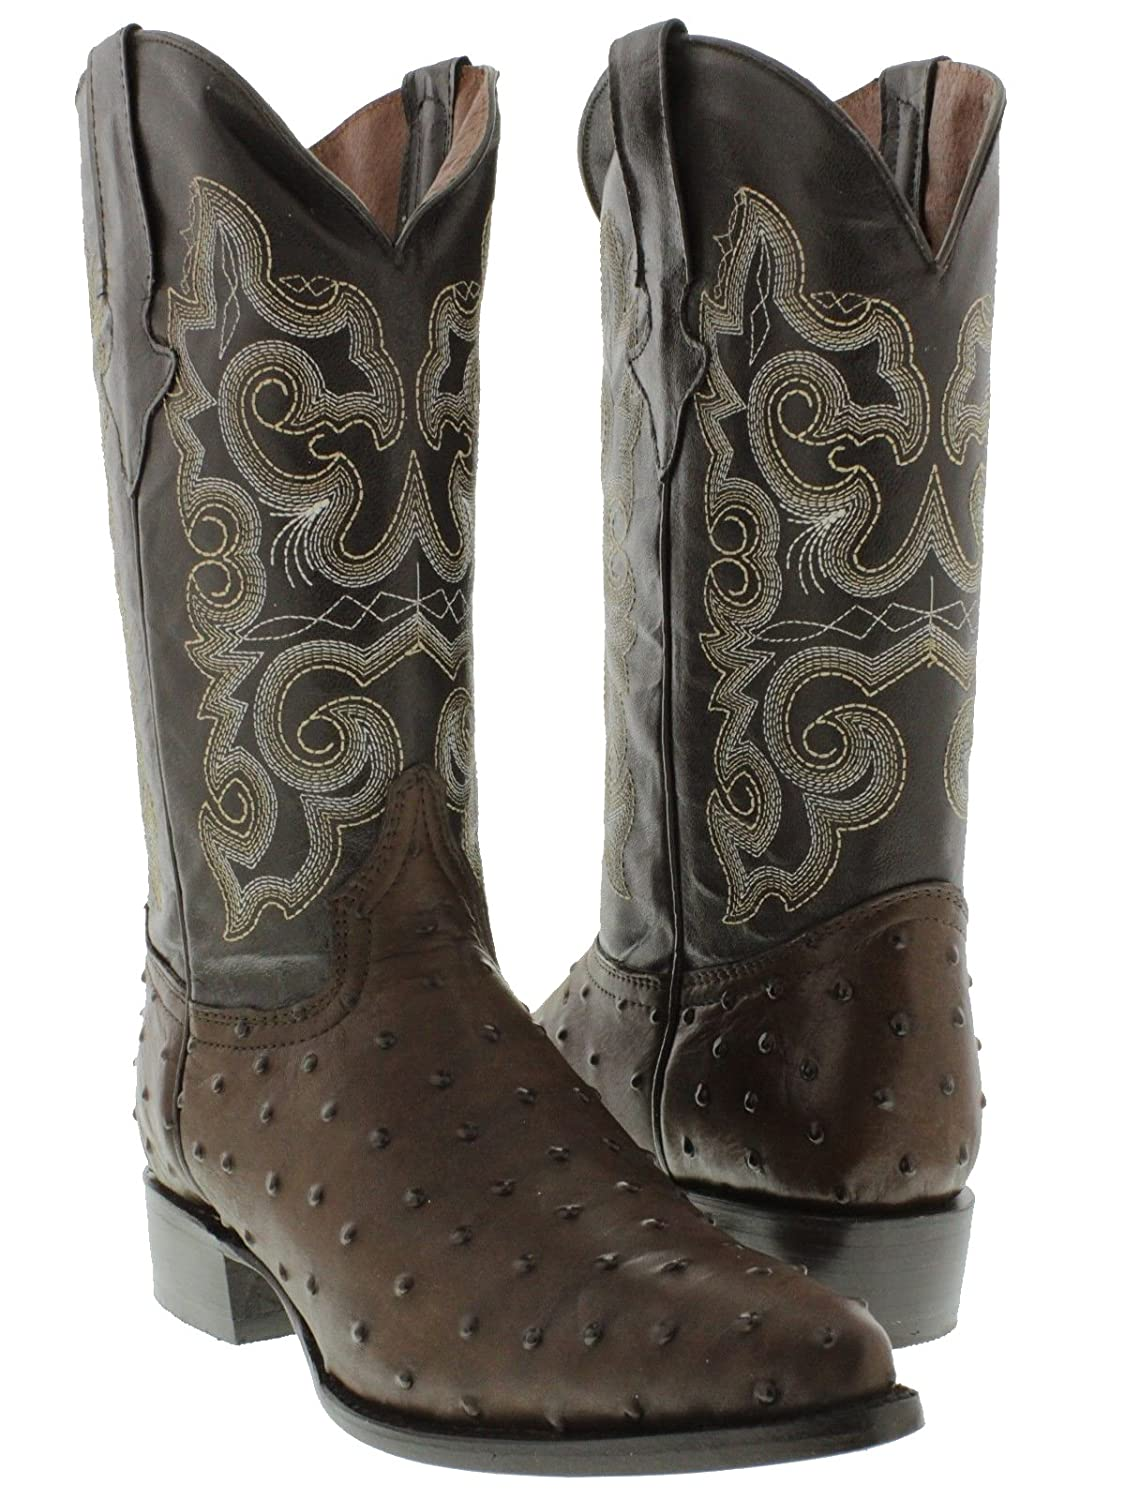 Team West - Men's Cognac Ostrich Quill Design Leather Cowboy Boots J Toe